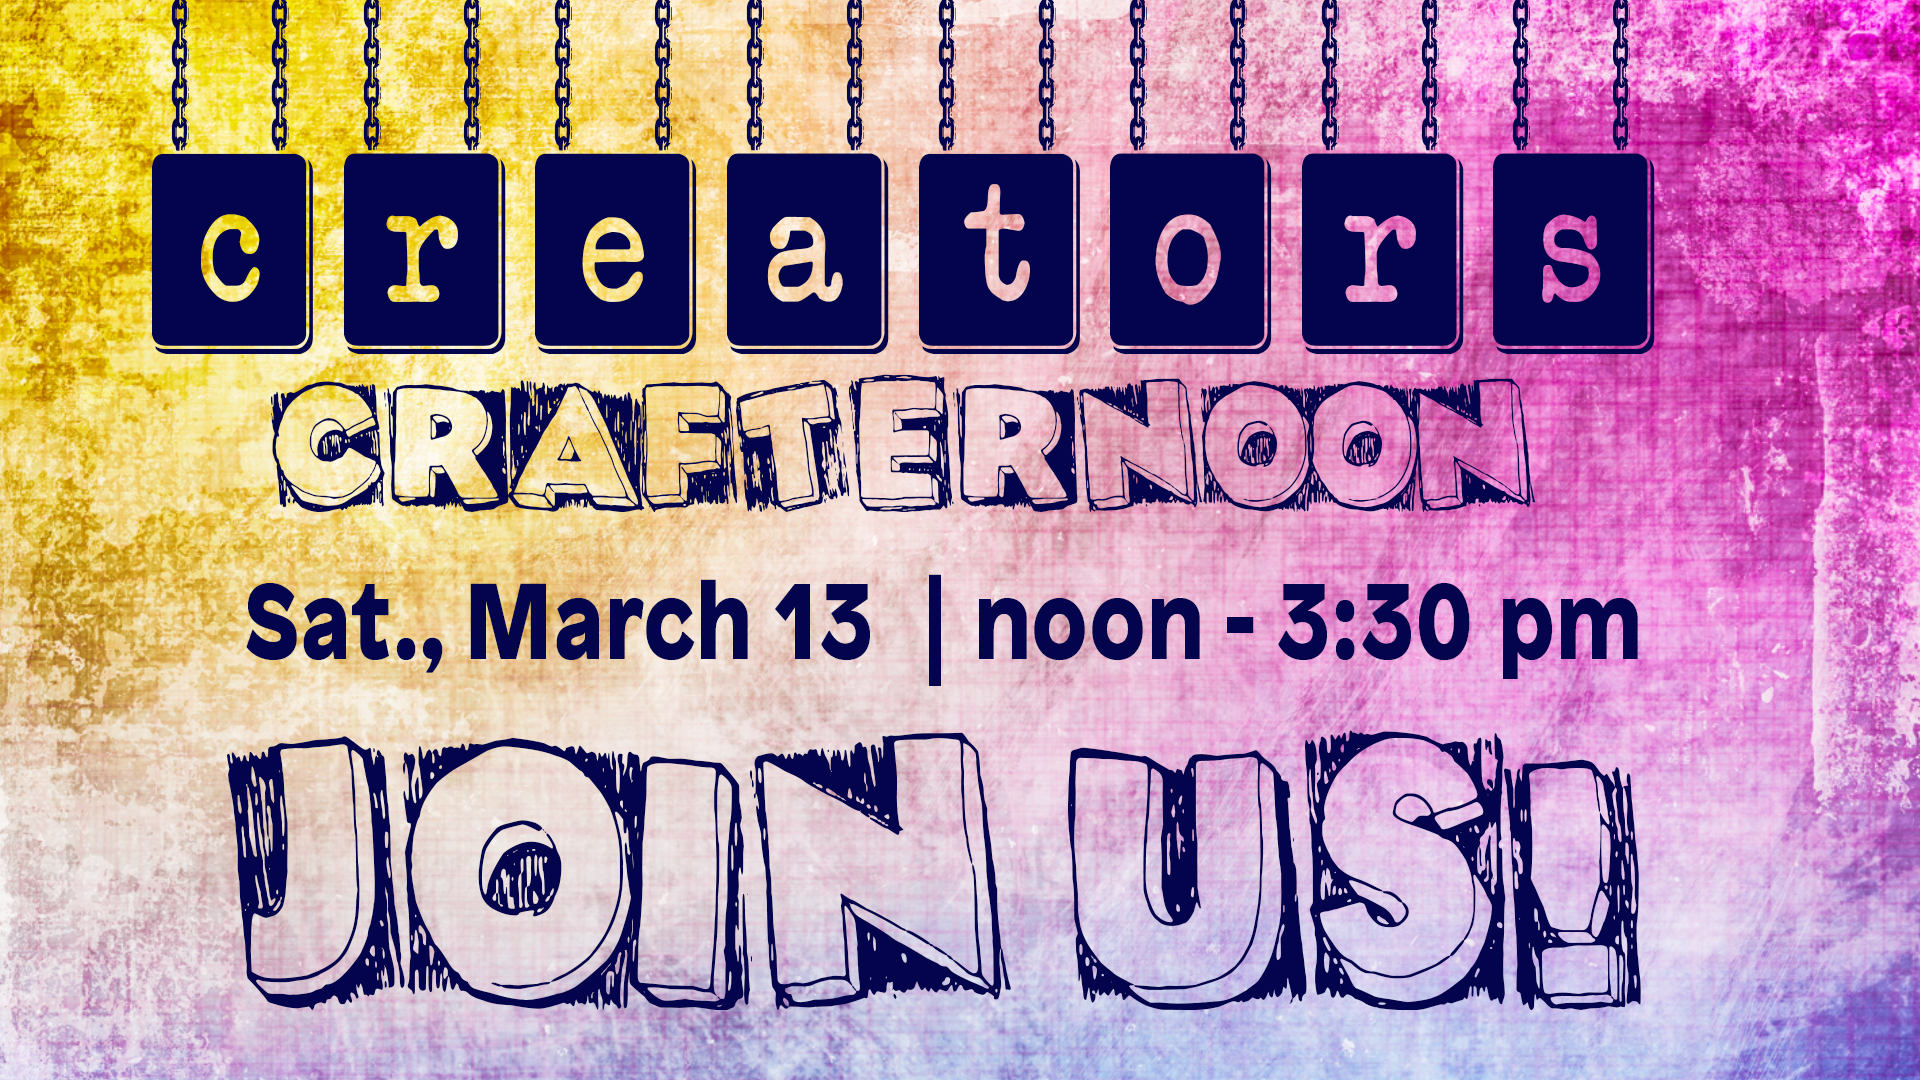 Creators Crafternoon